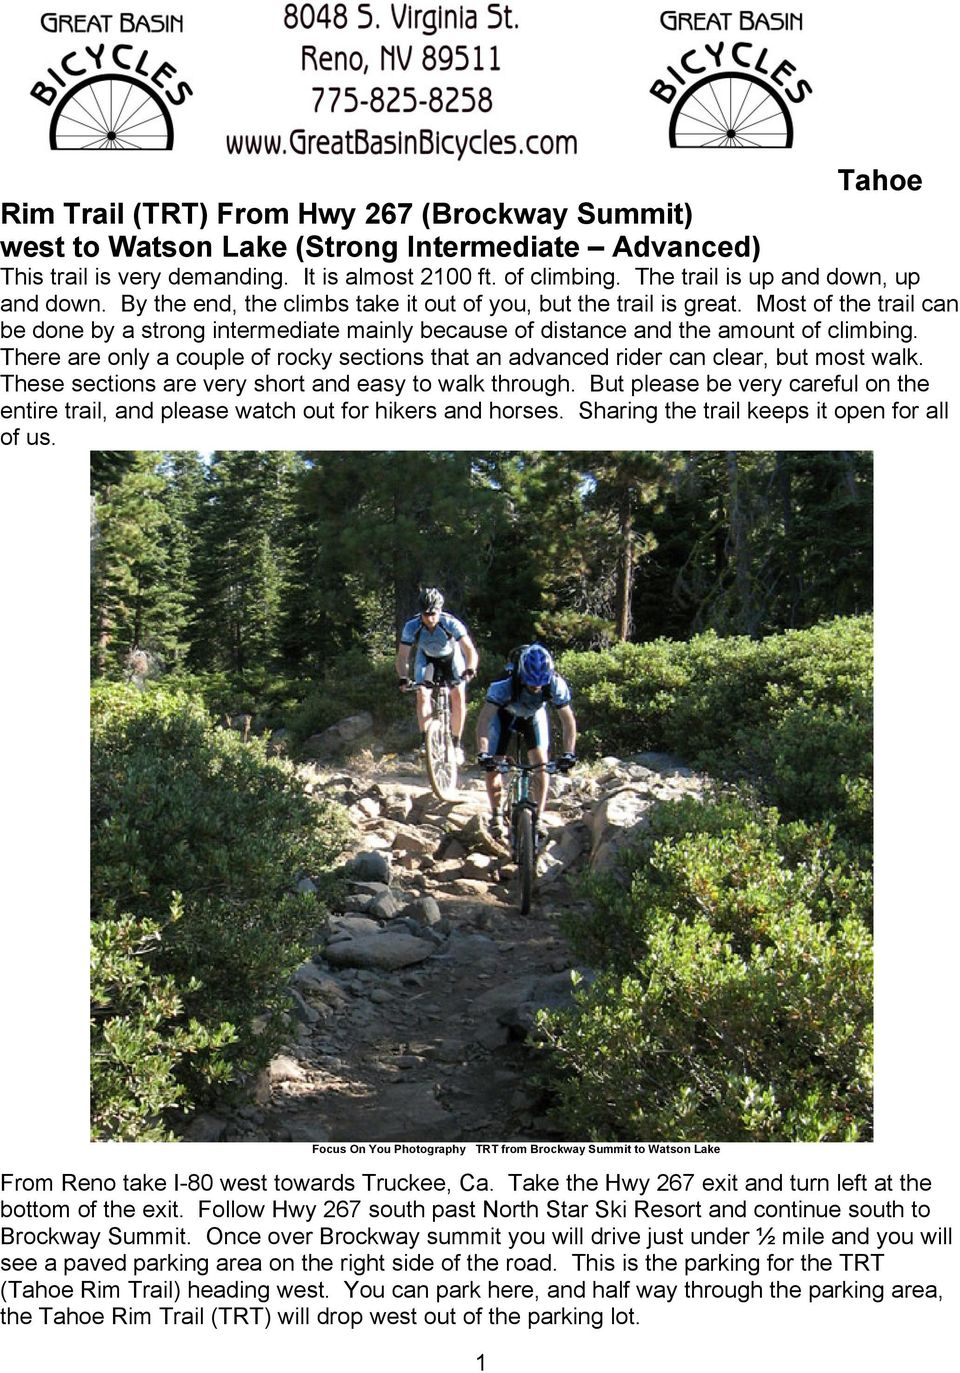 Most of the trail can be done by a strong intermediate mainly because of distance and the amount of climbing. There are only a couple of rocky sections that an advanced rider can clear, but most walk.